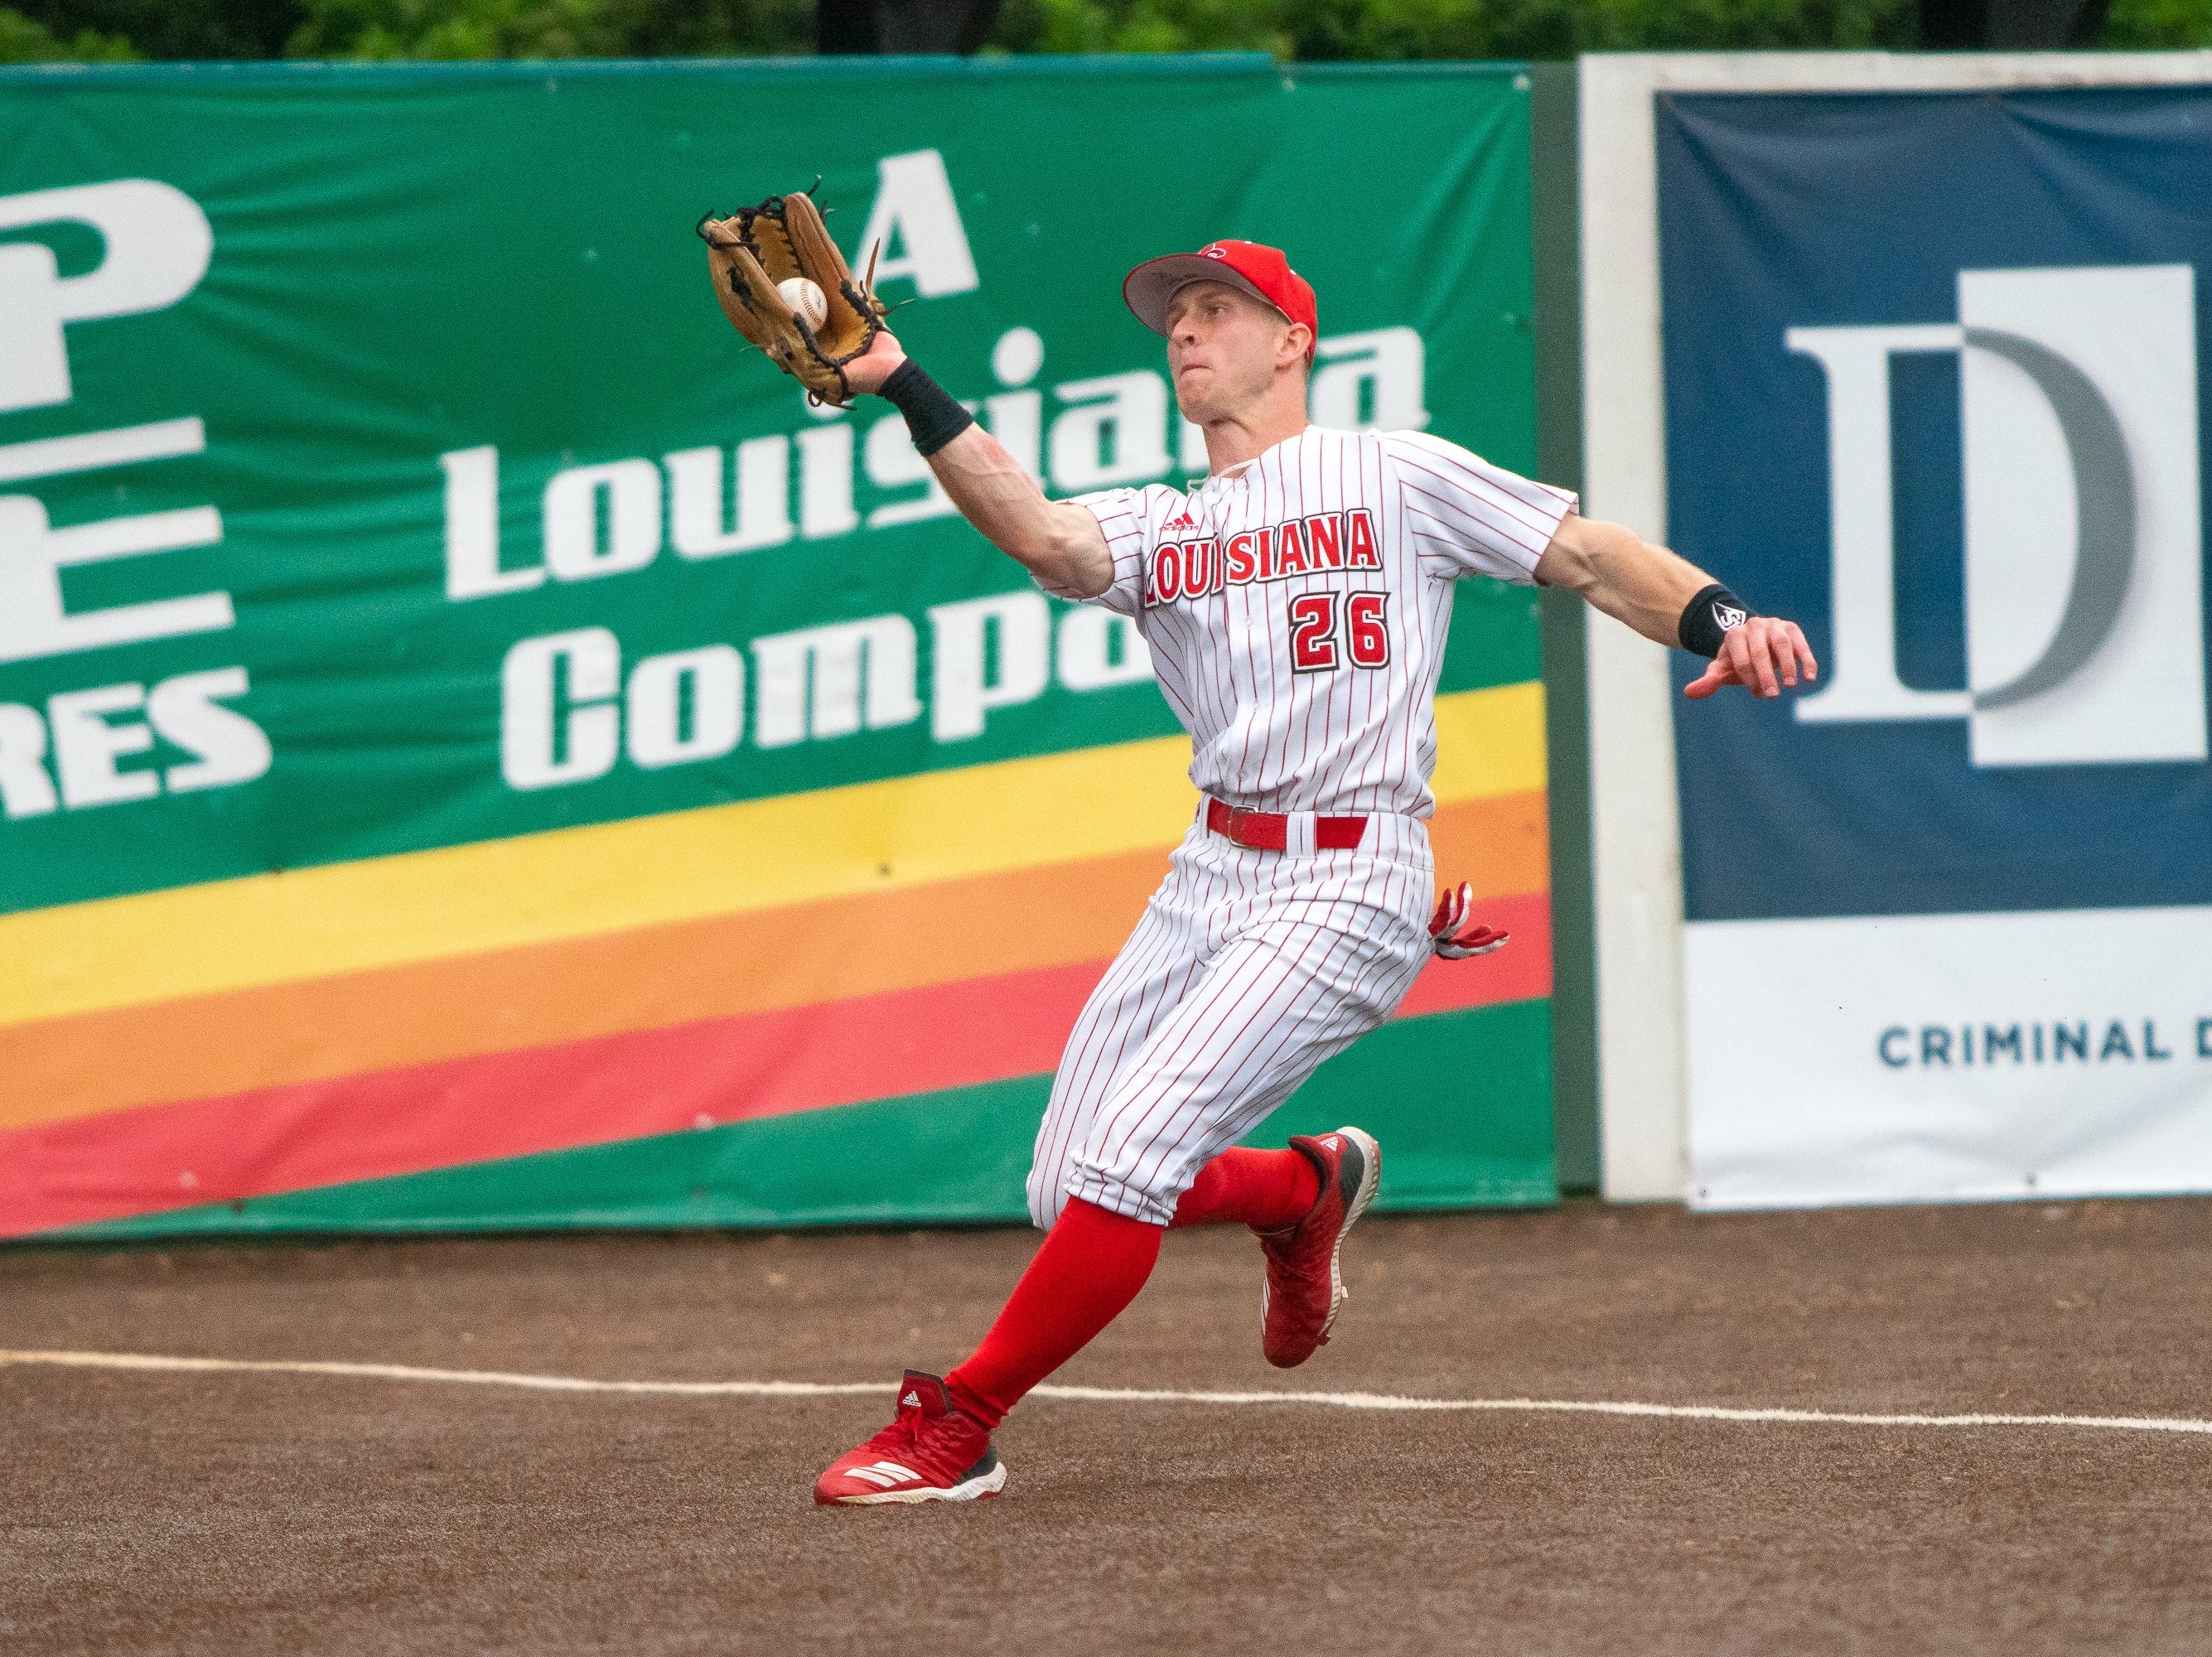 UL's Daniel Lahare makes a catch in the outfield as the Ragin' Cajuns take on the Loyola Marymount Lions at M.L. Tigue Moore Field on March 10, 2019.